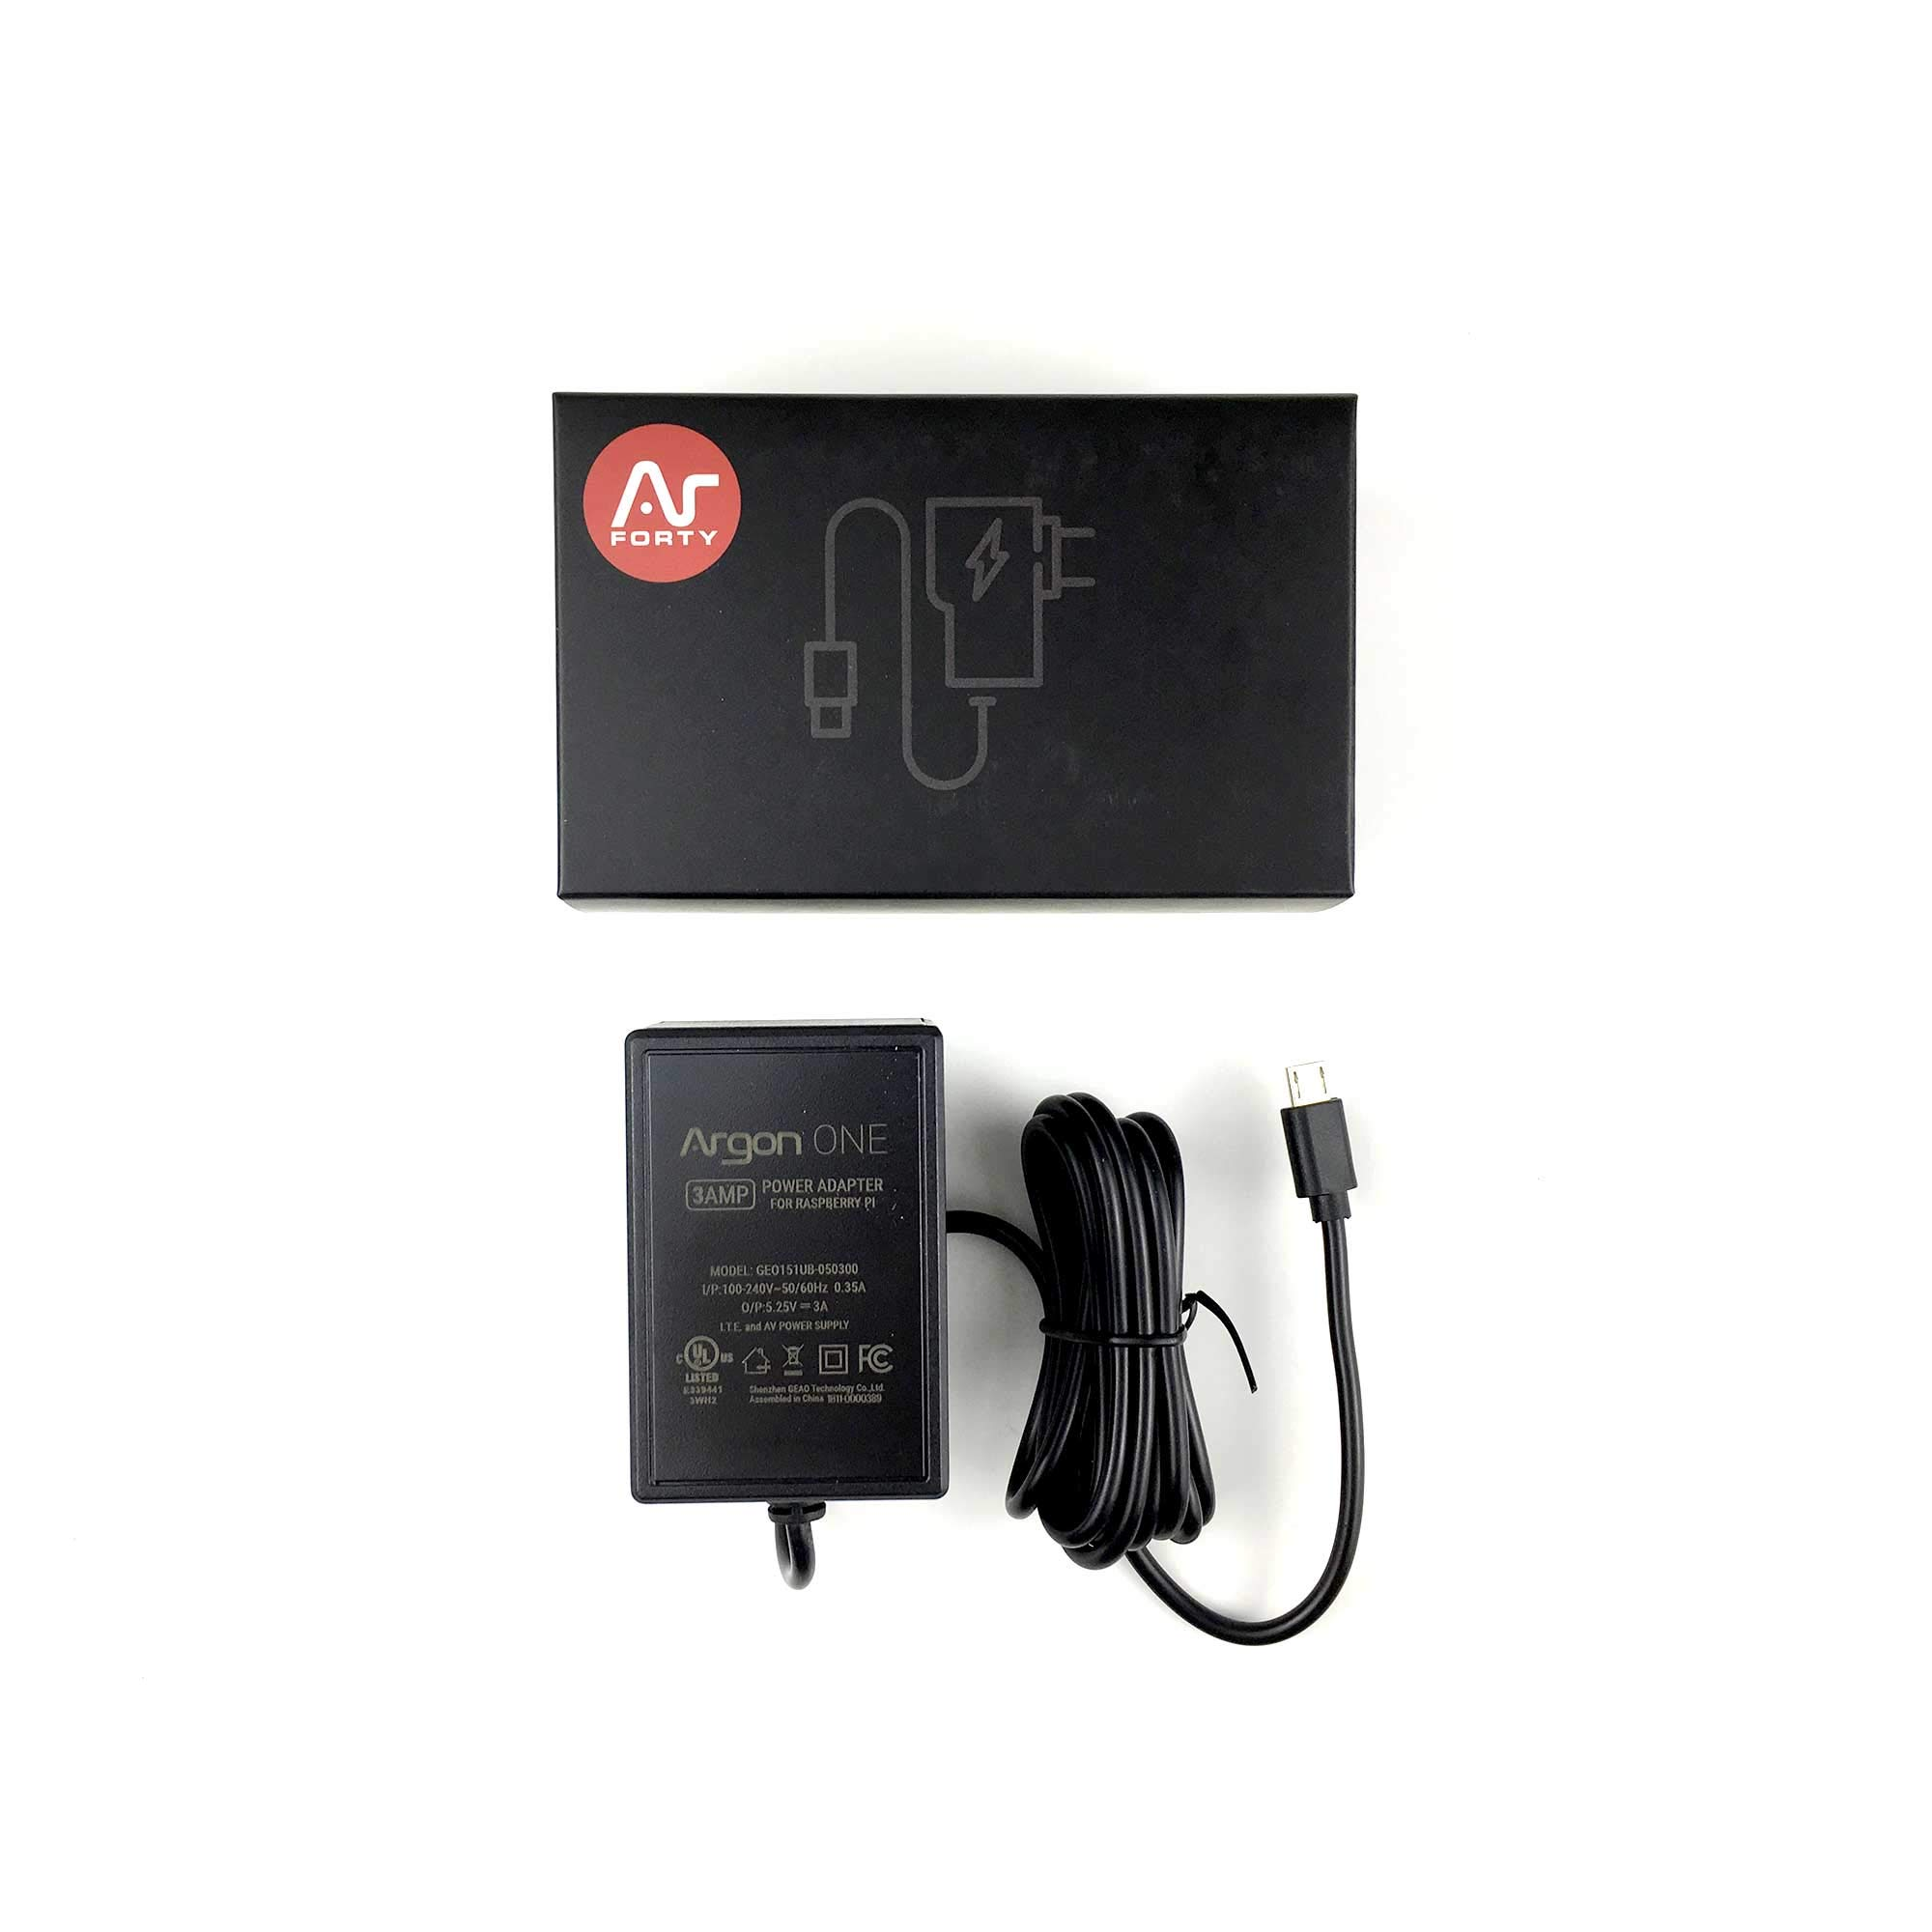 Argon ONE Raspberry Pi UL Listed Power Supply 5.25 Volts 3 Amps